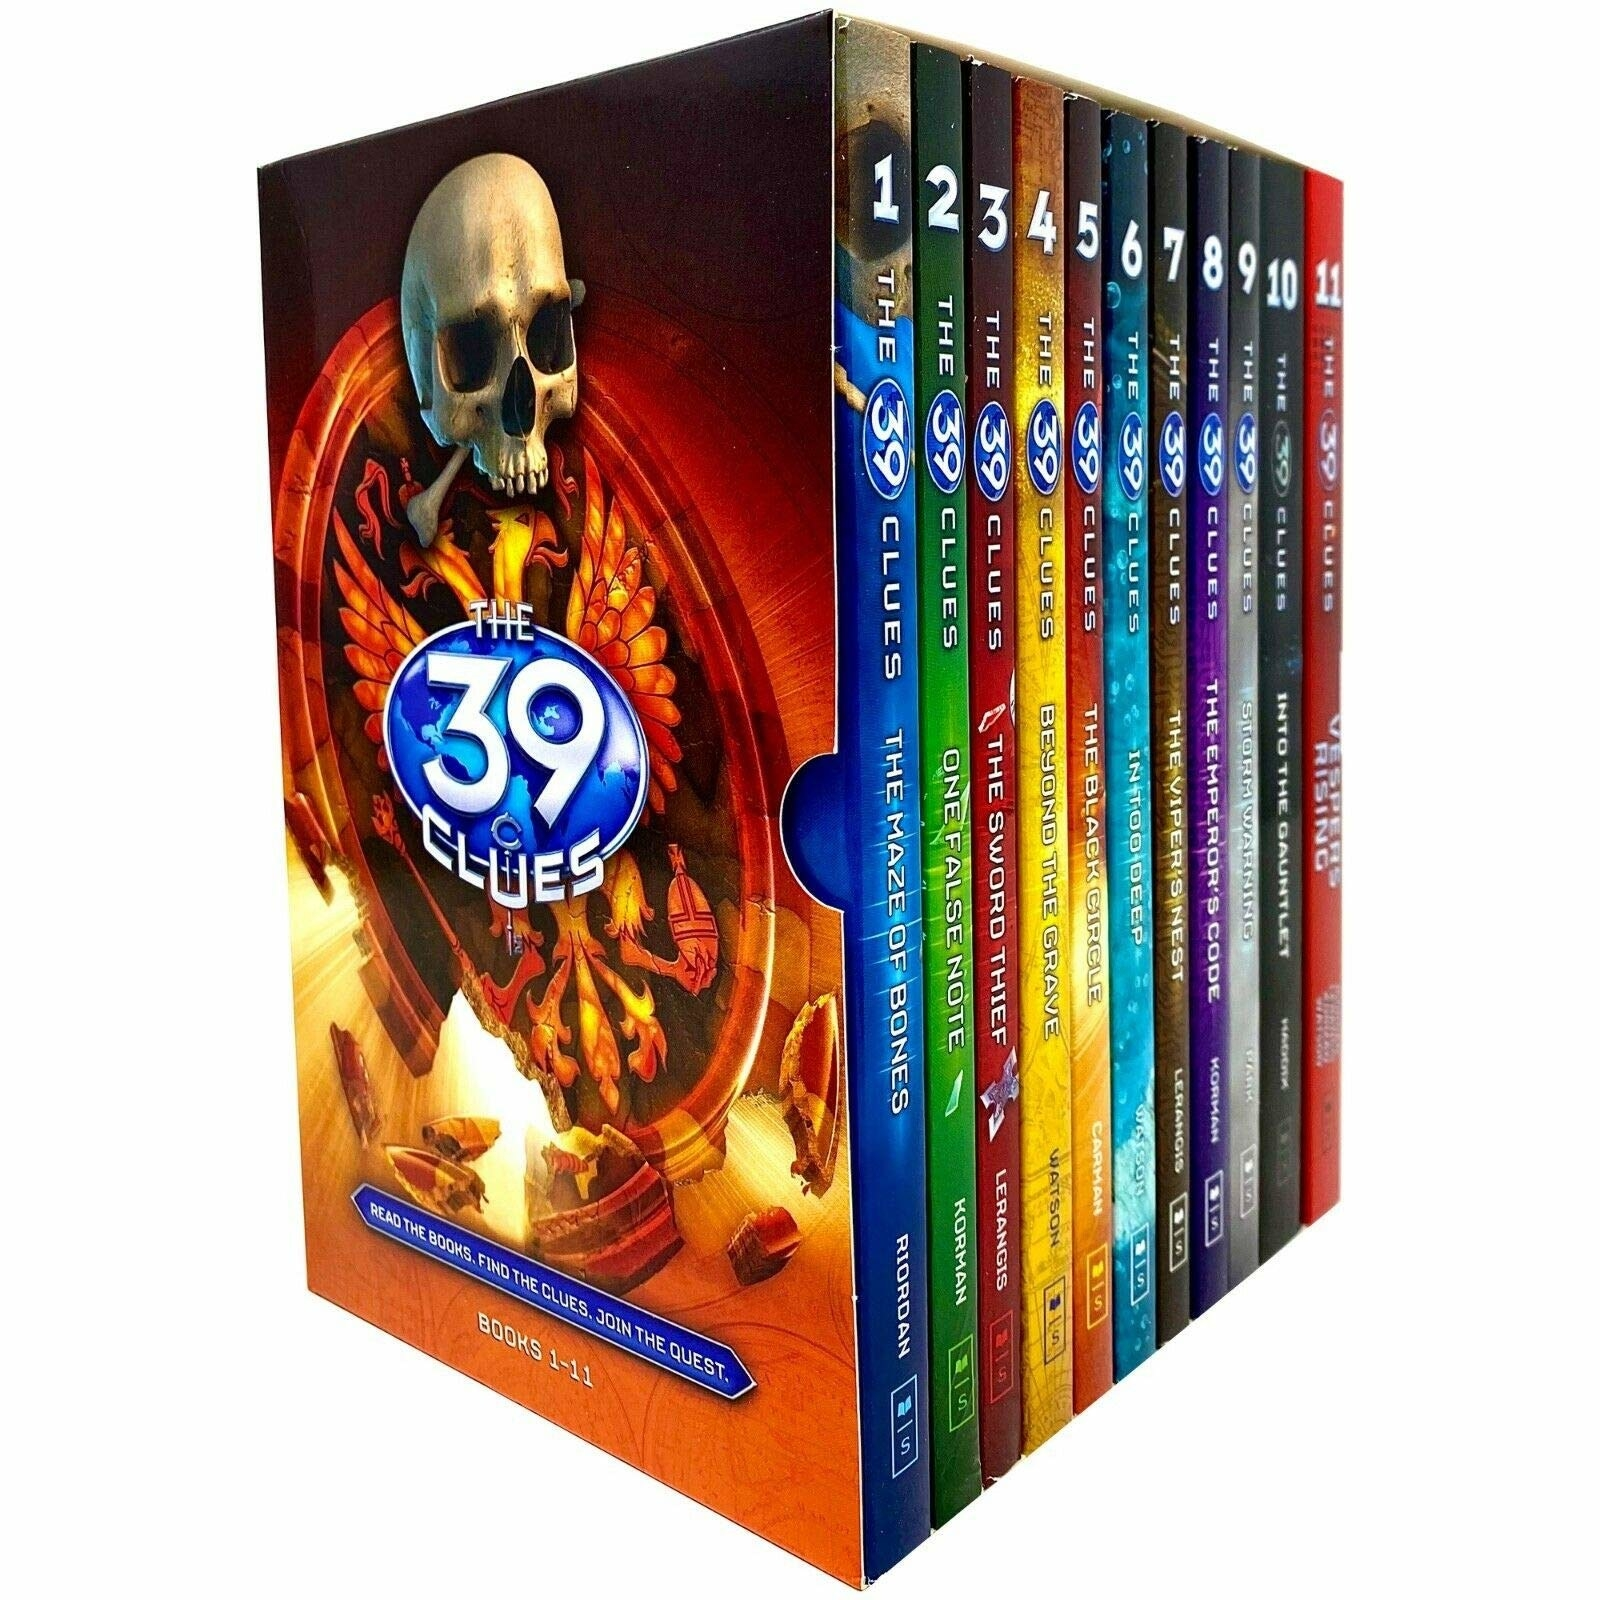 Box set of 39 Clues series with colorful spines on display. Front image is a skull and other orange objects